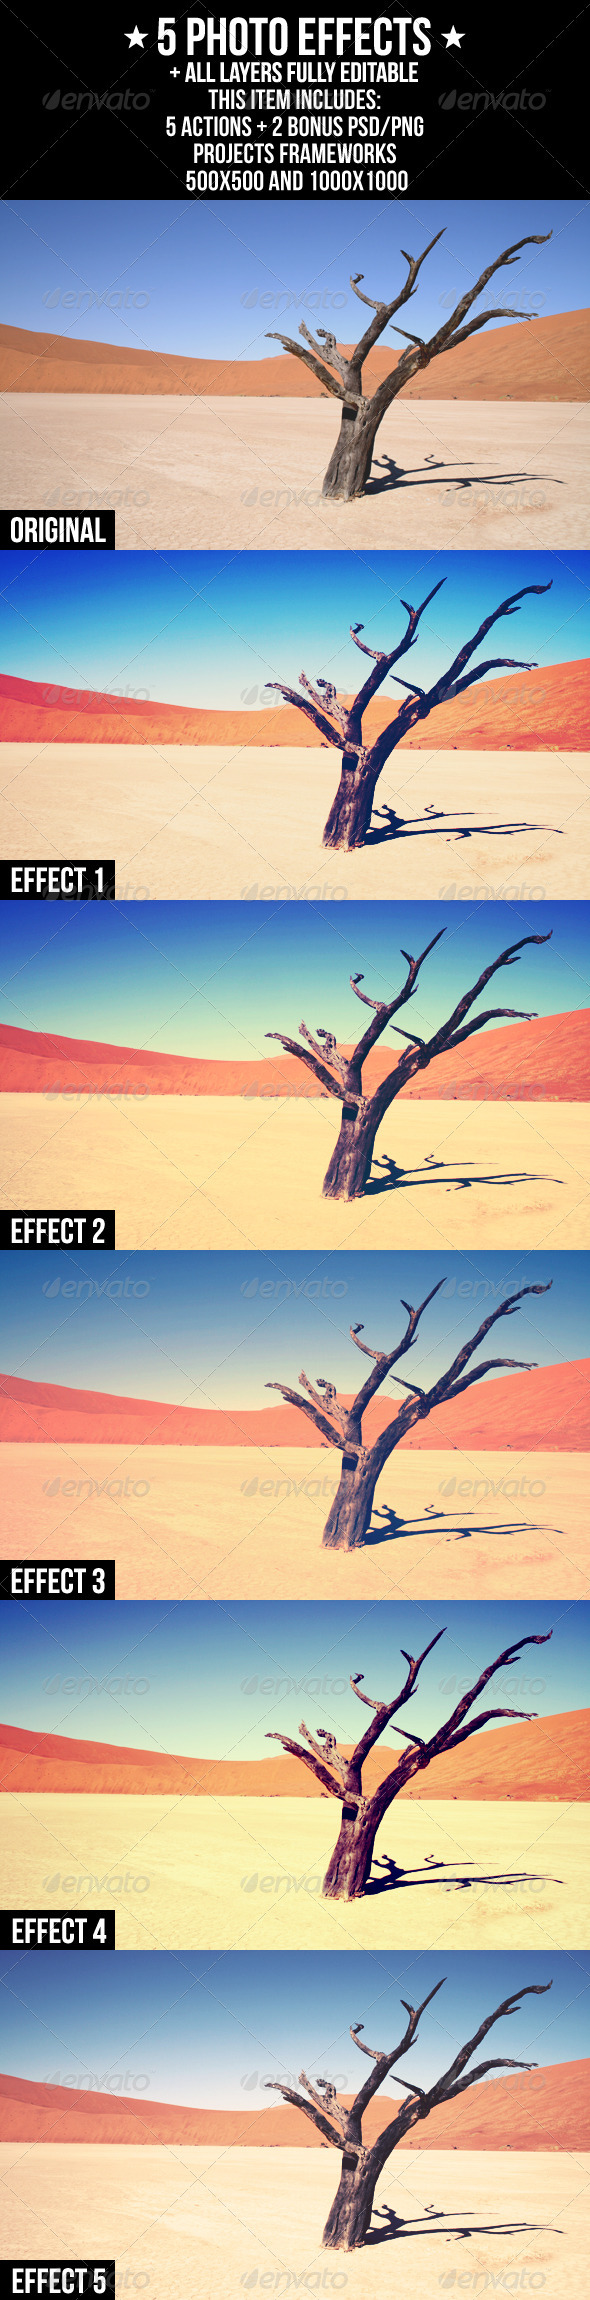 5 Photo Effects - Photo Effects Actions